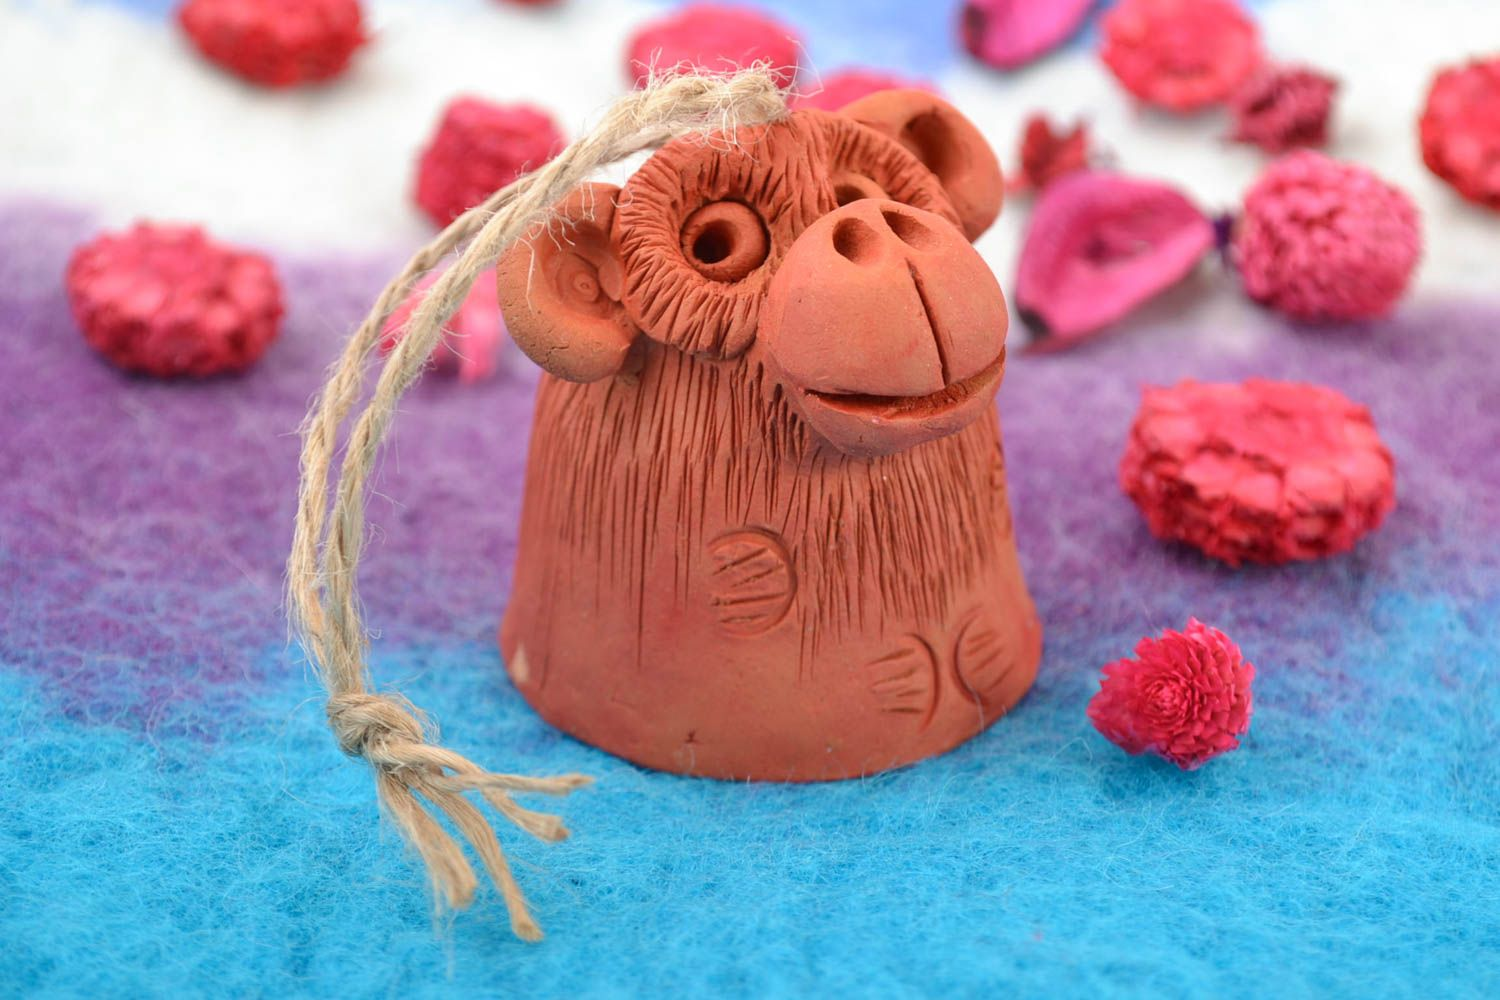 Small funny decorative handmade ceramic bell in the shape of monkey with cord photo 1